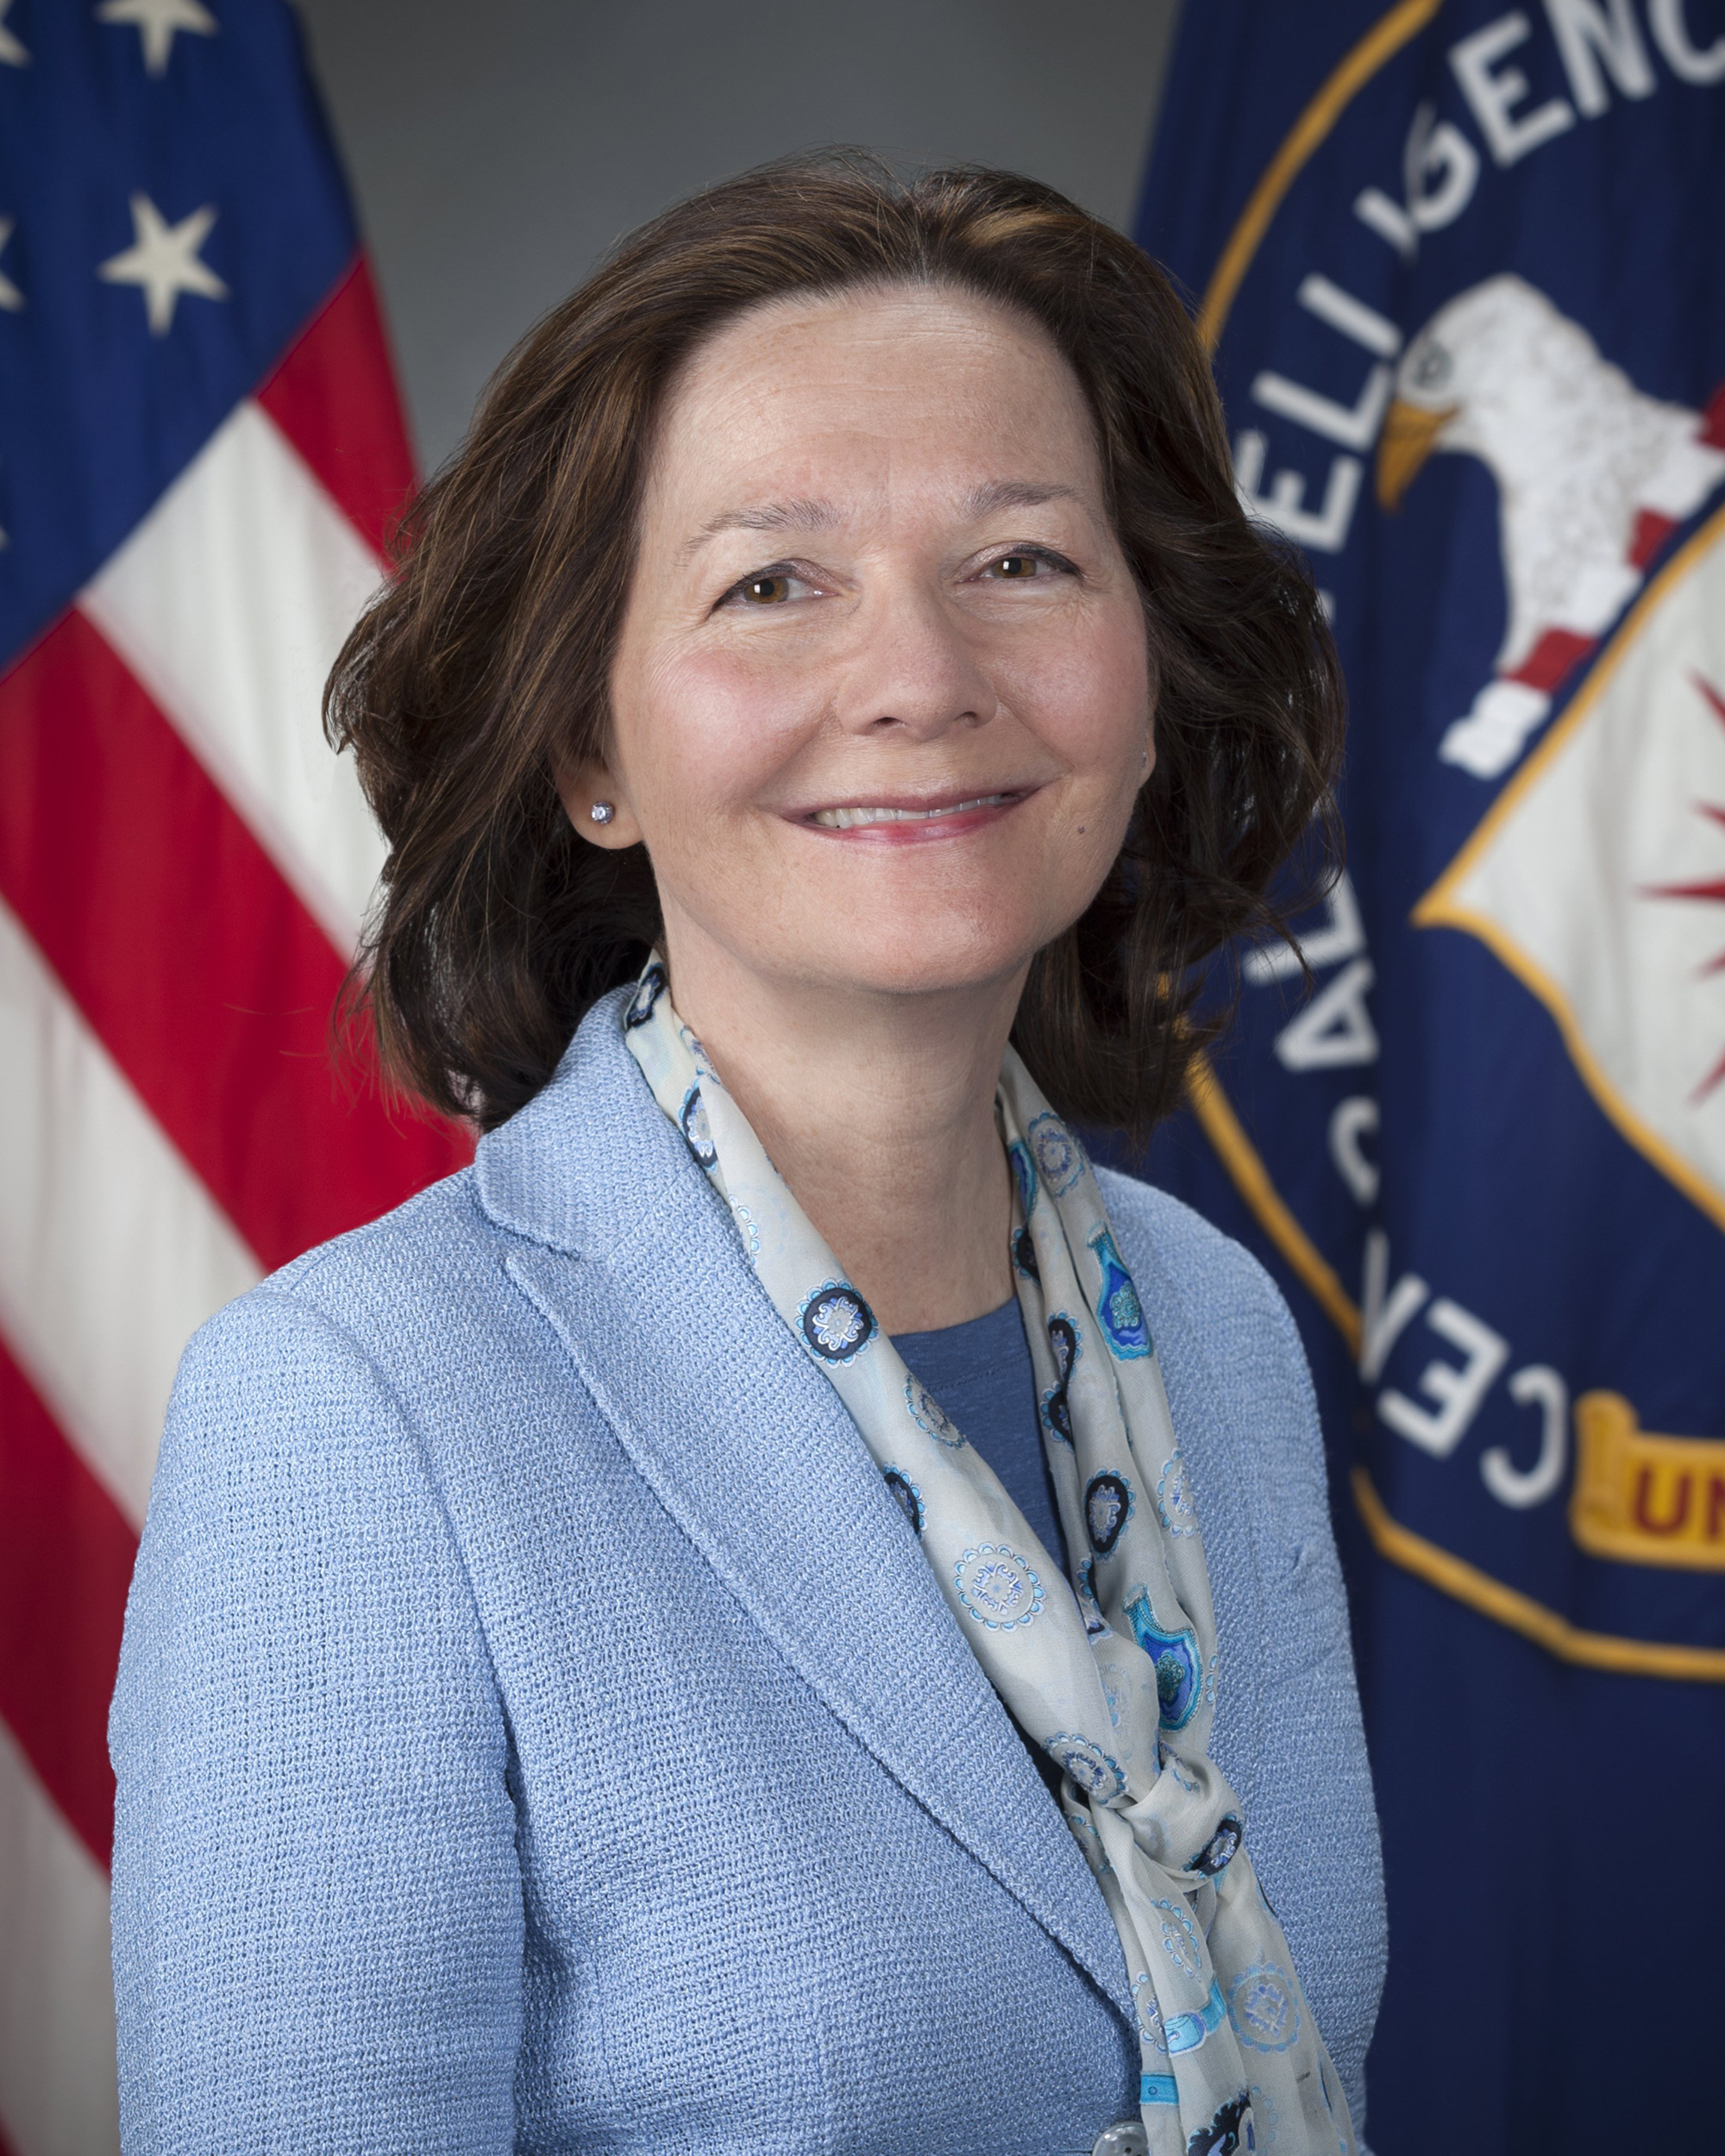 Who-is-Gina-Haspel,-Trump's-new-CIA-head?-'Spymaster'-with-a-torture-past